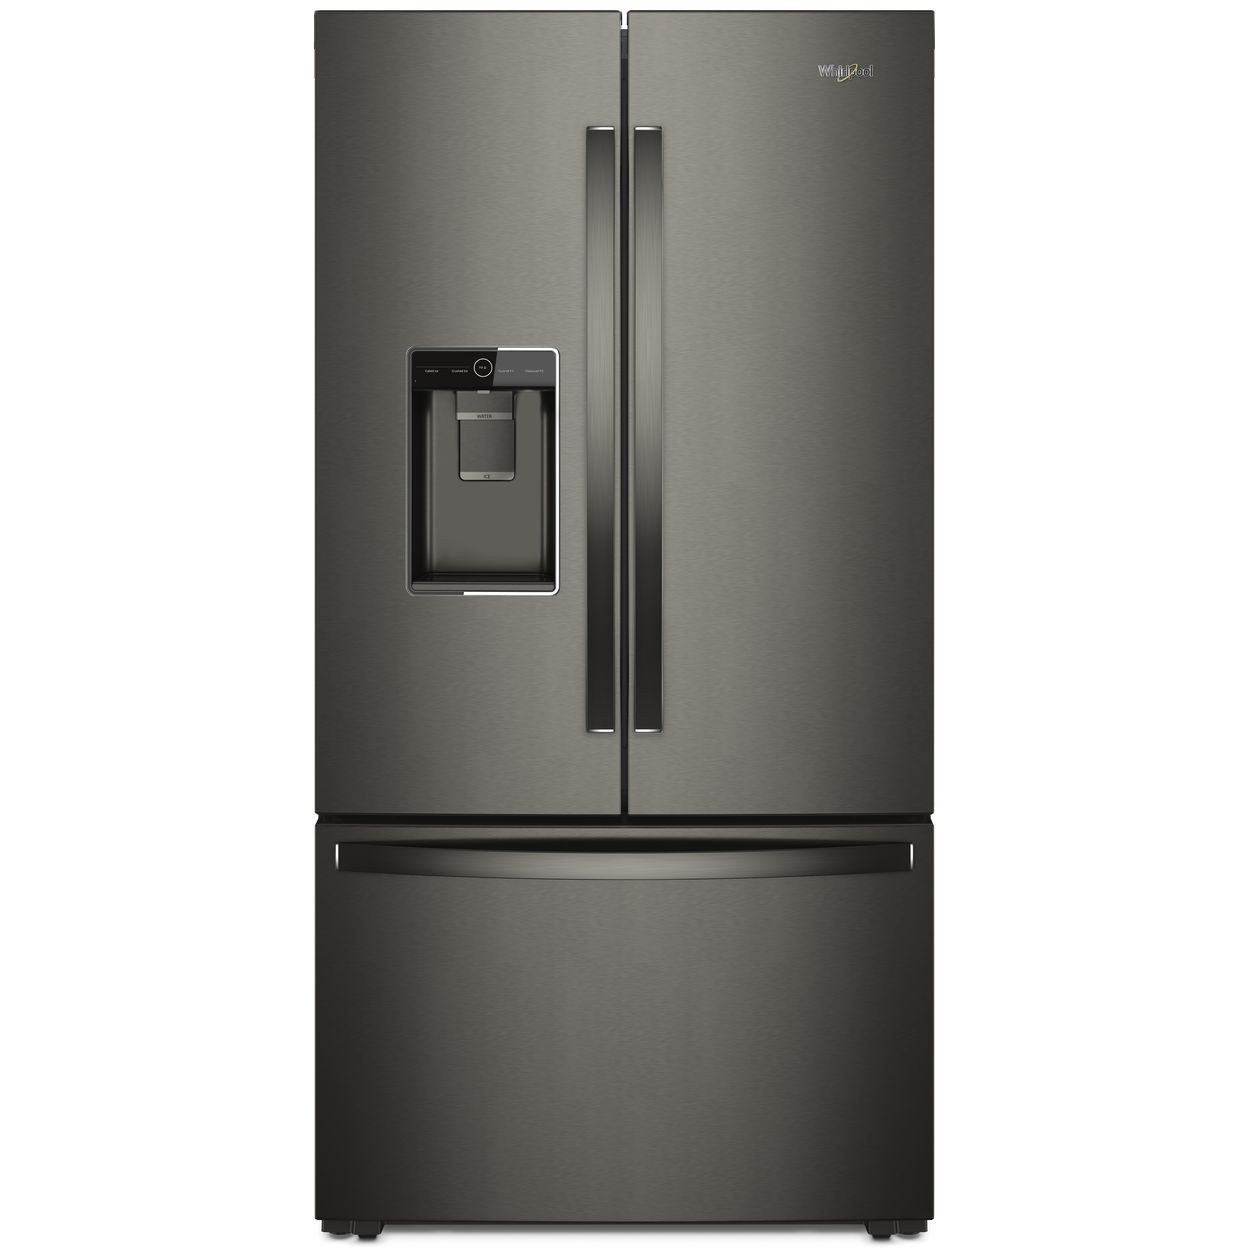 Whirlpool Counter Depth French Door Refrigerator 36 Inch 23 8 Cu Ft Black Stainless Steel Rc Willey Furniture Store